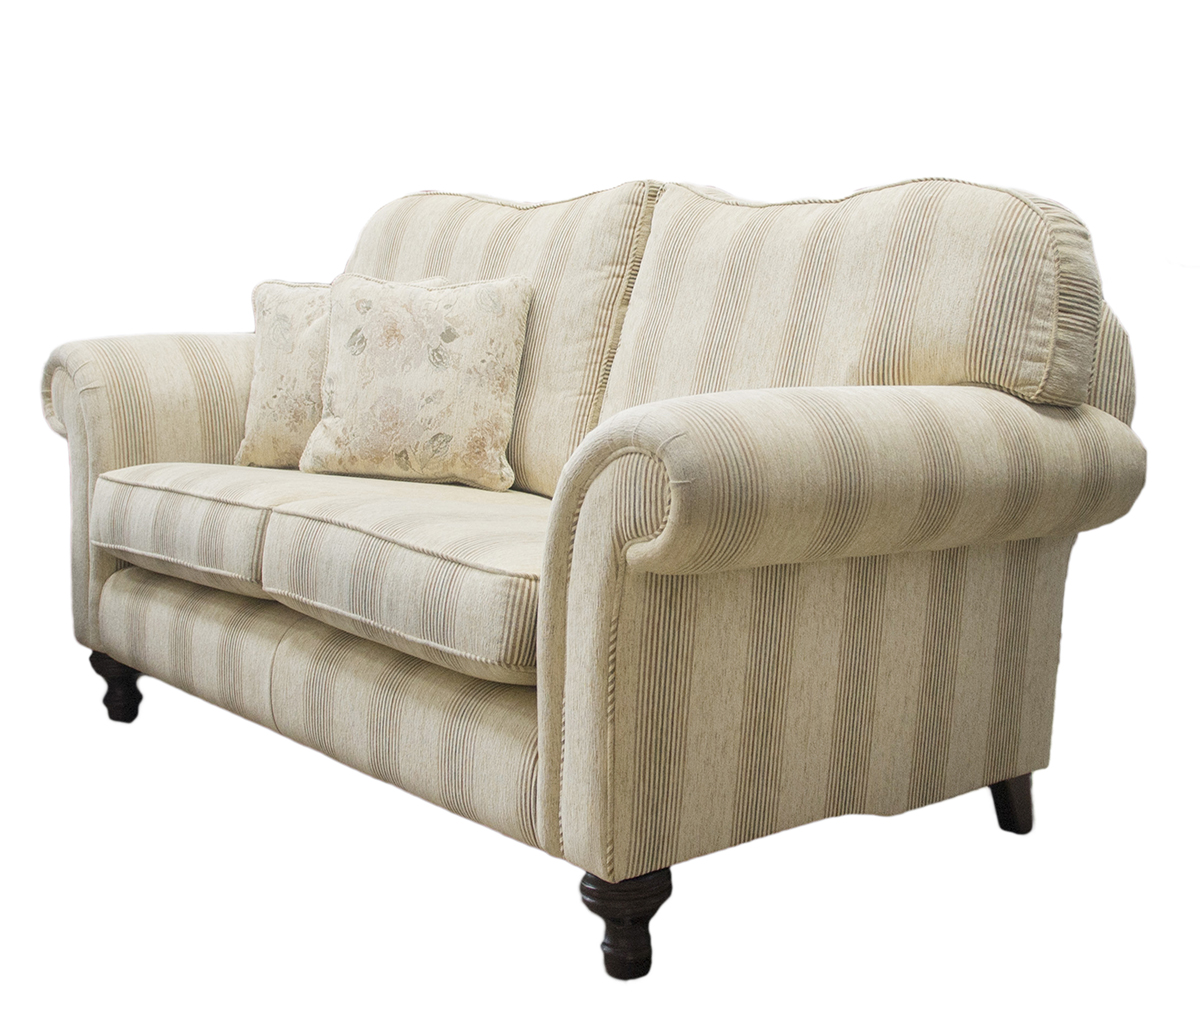 Newbury Large Sofa Side in Eustacy Stripe Silver Collection Fabric